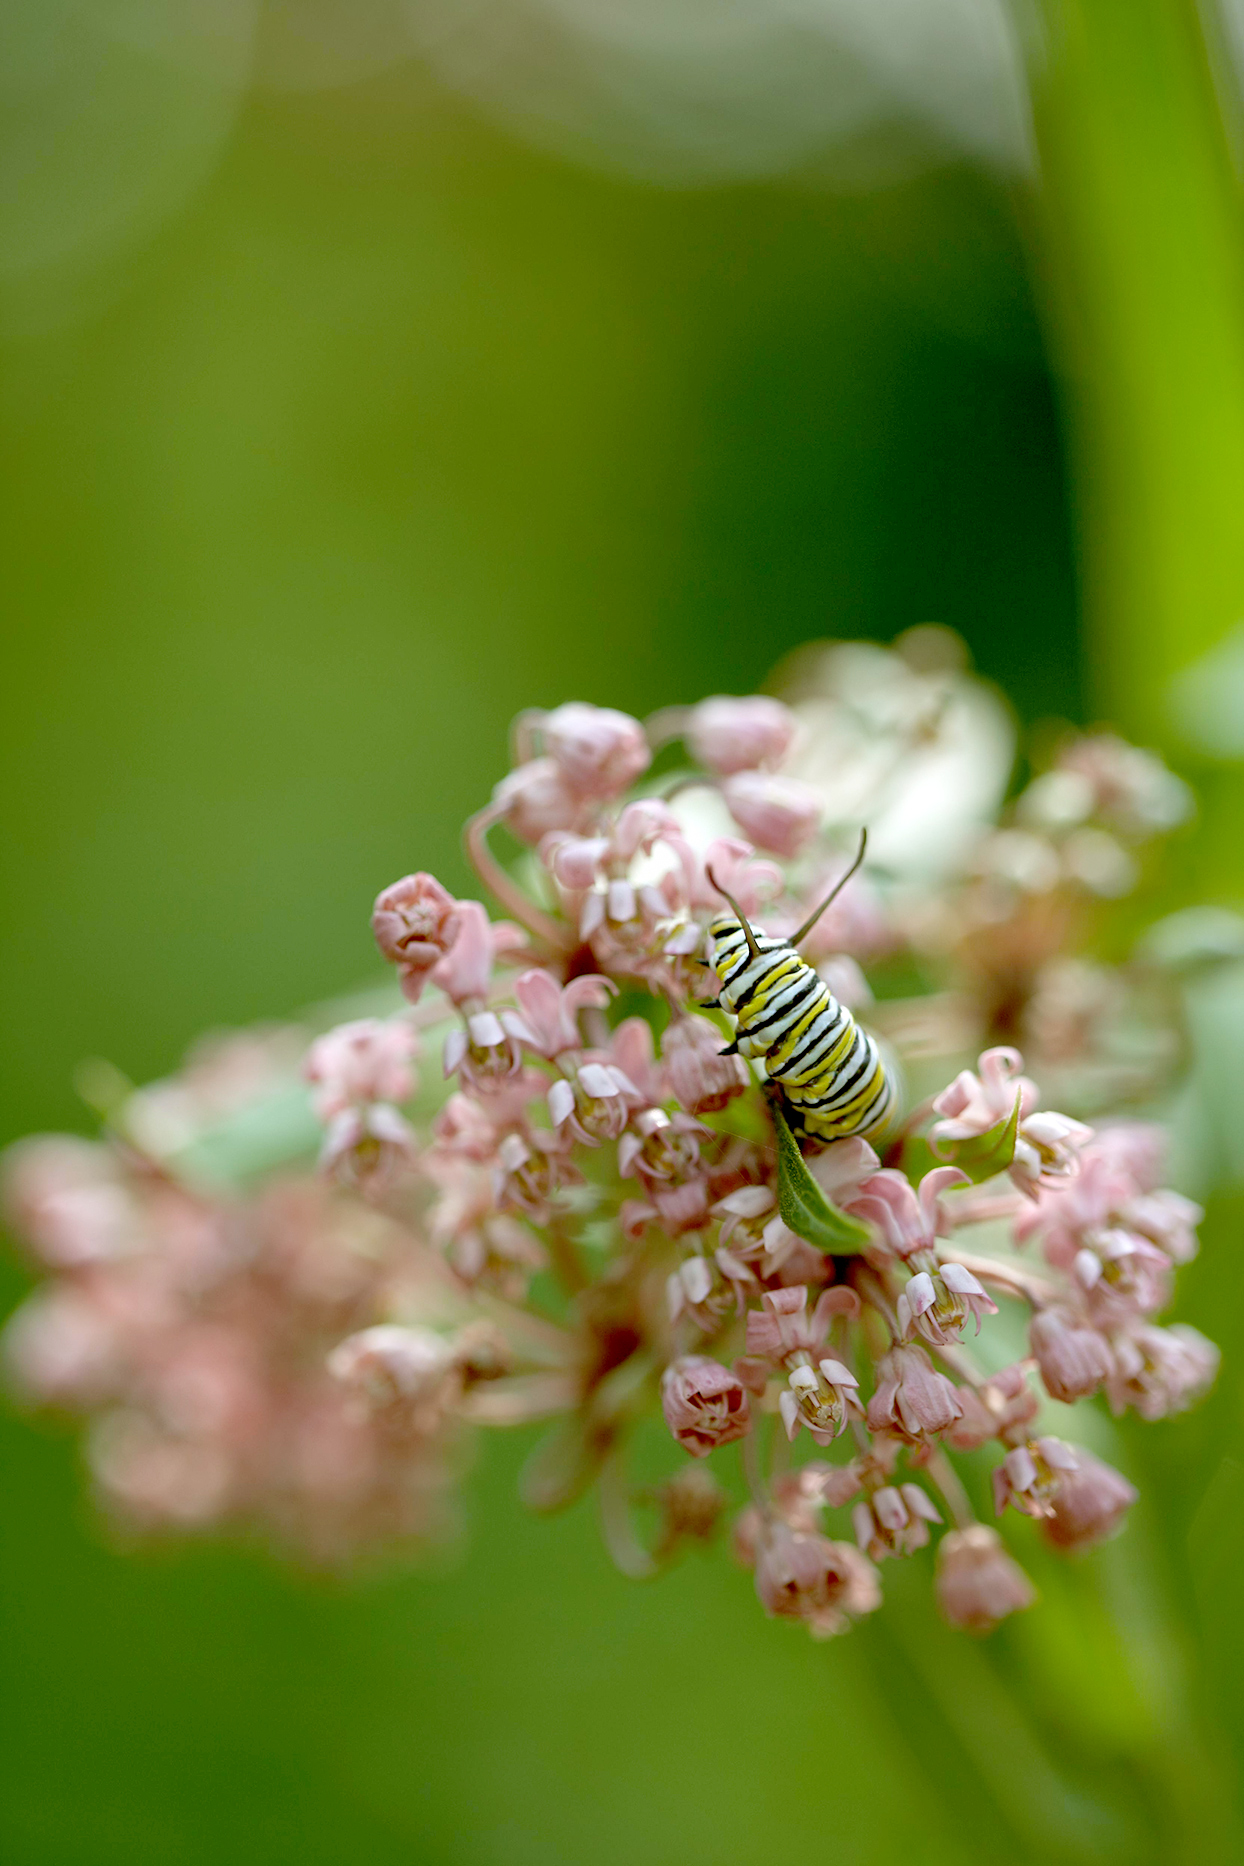 Monarch caterpillar on pink flowers